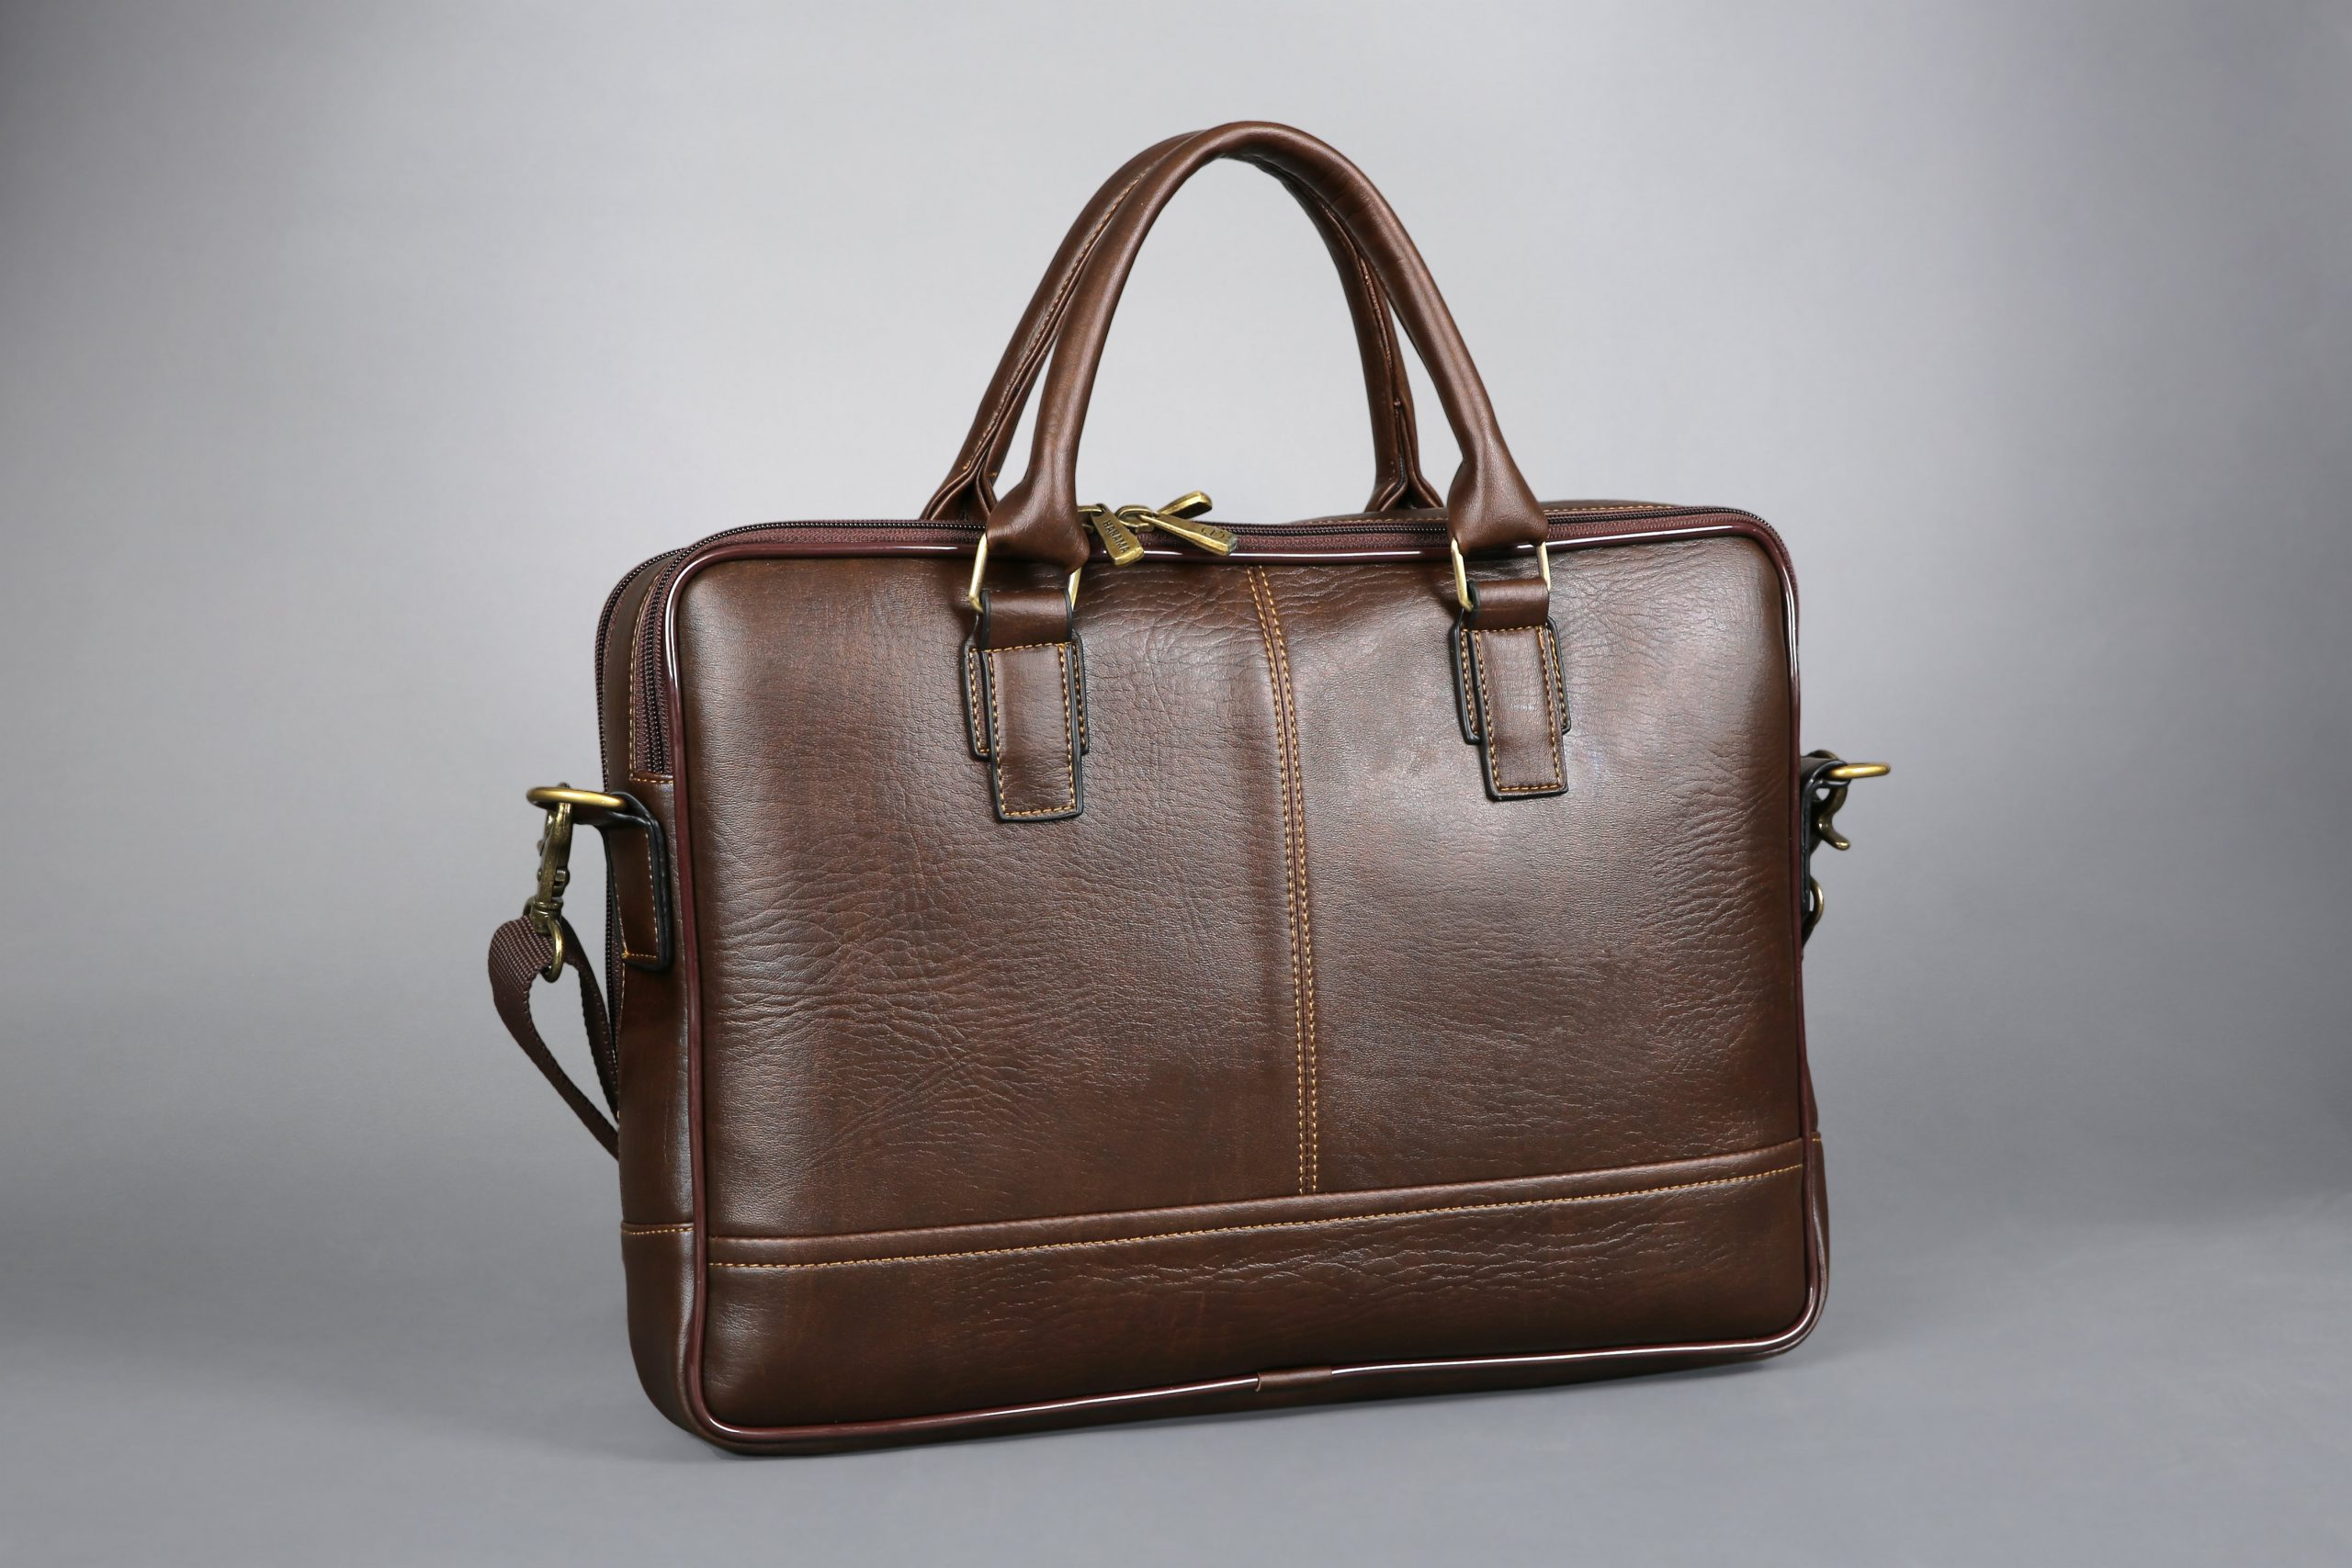 Finest Synthetic Leather Manufacturing Company India - RMB